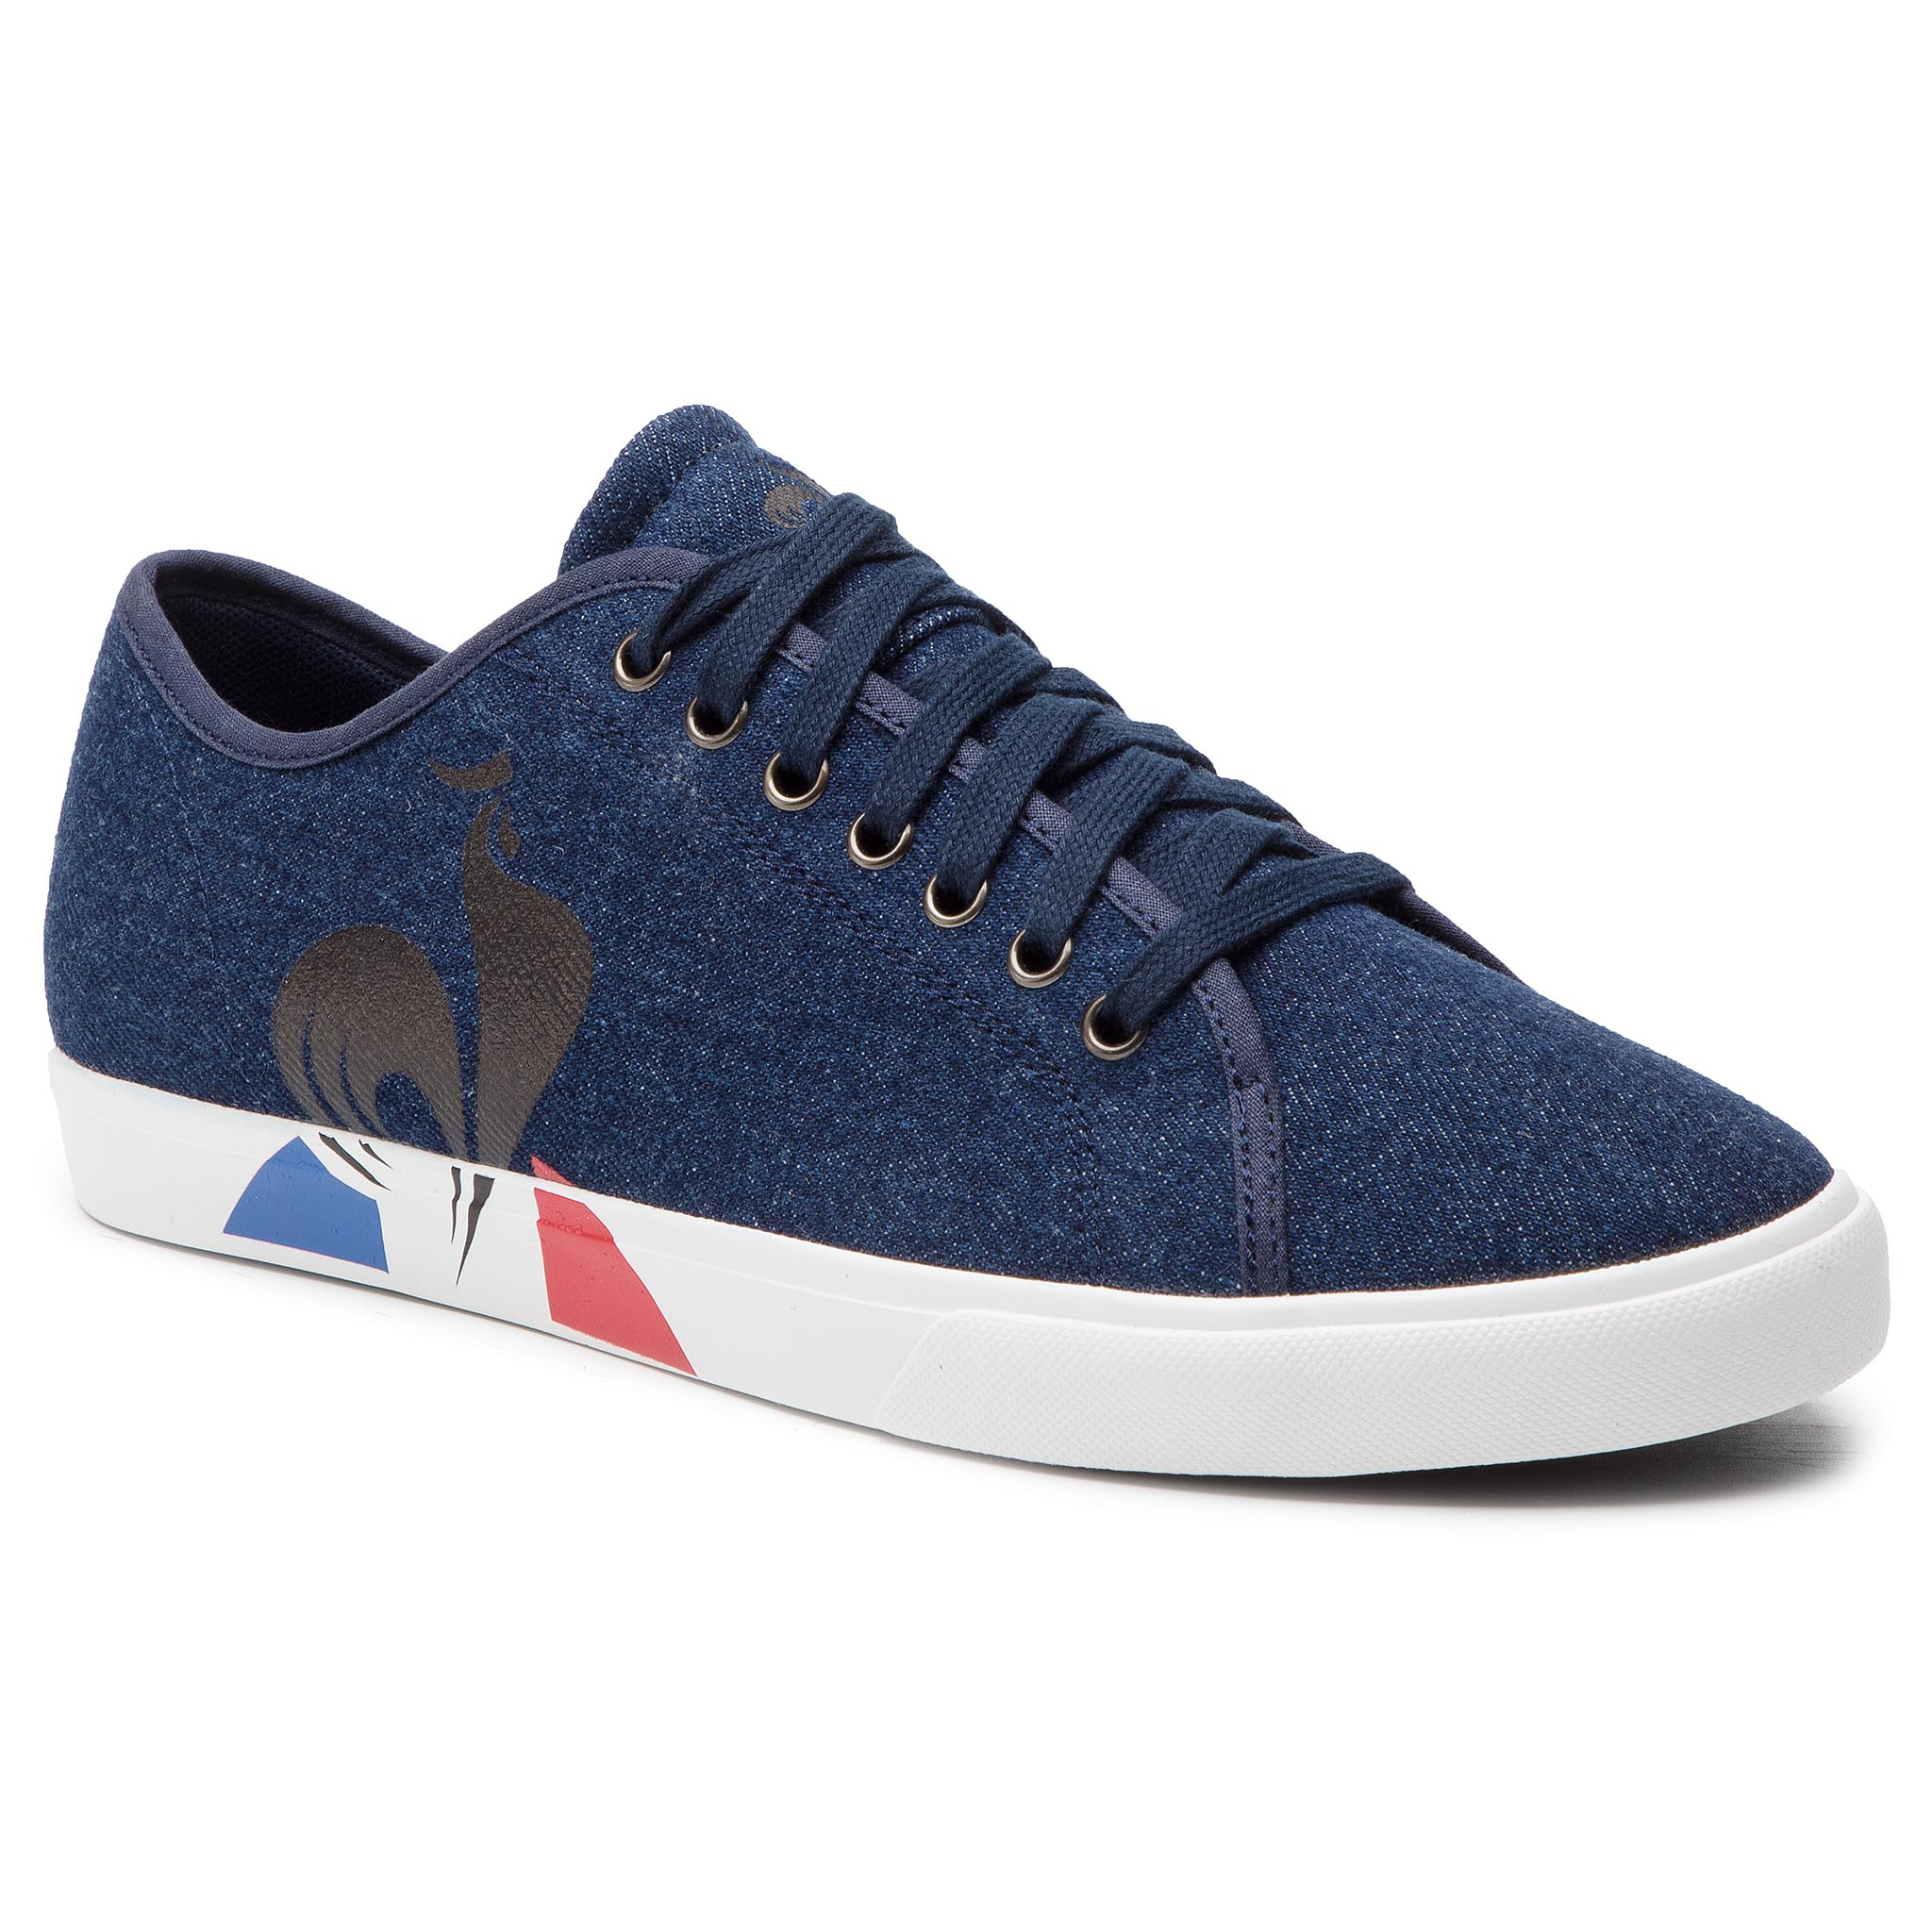 Sneakers LE COQ SPORTIF - Verdon Bold Denim 1910278 Dress Blue/Optical White